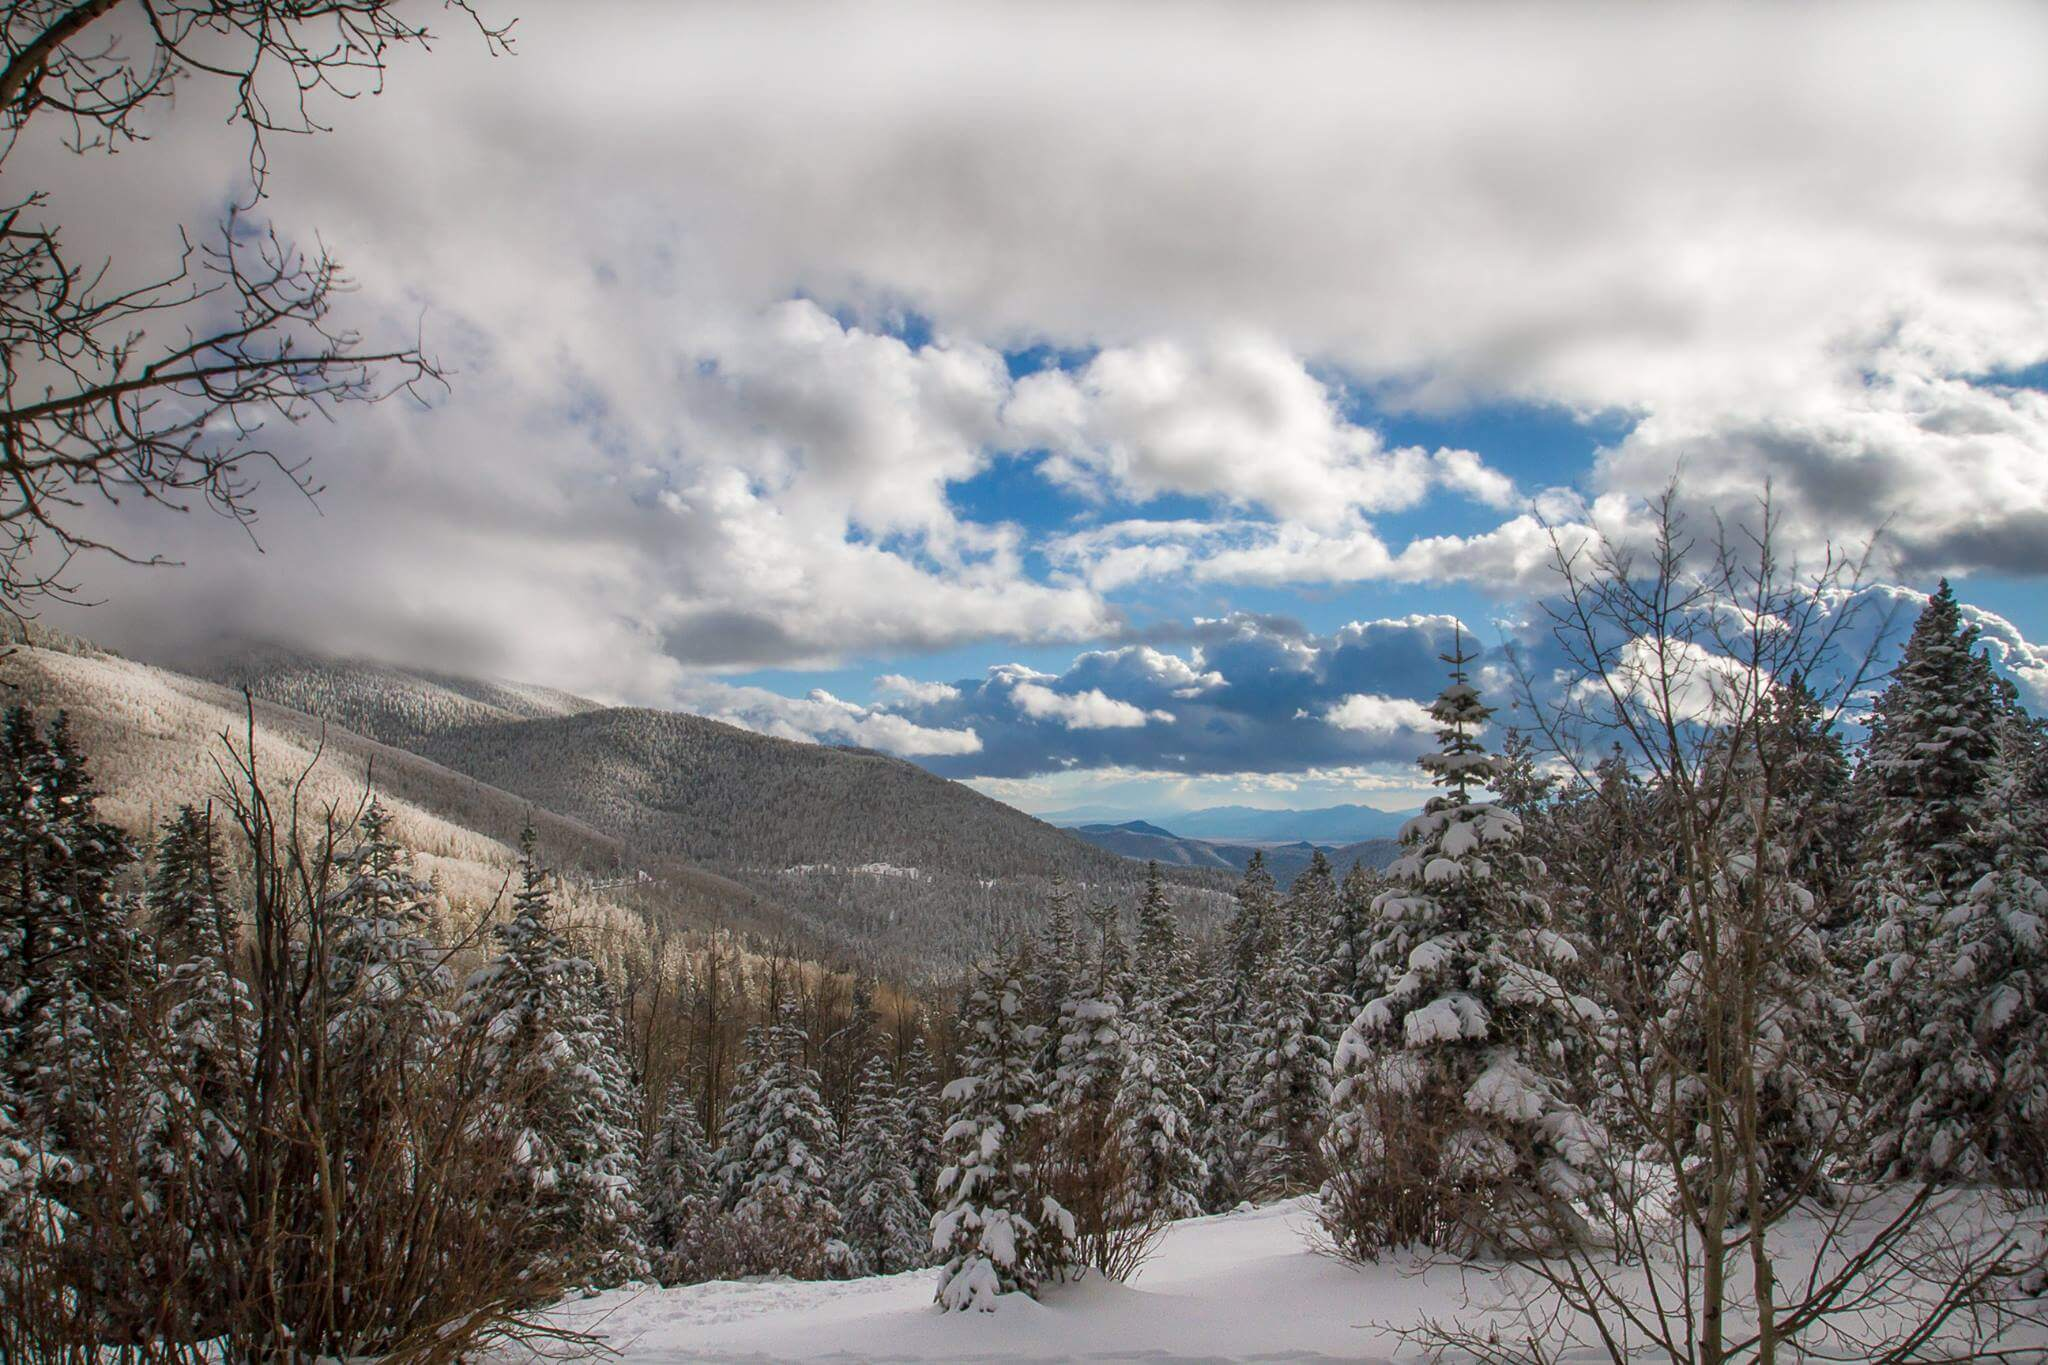 Sangre de Cristo Mountains, Santa Fe - Photo by DeeAnn Chavez